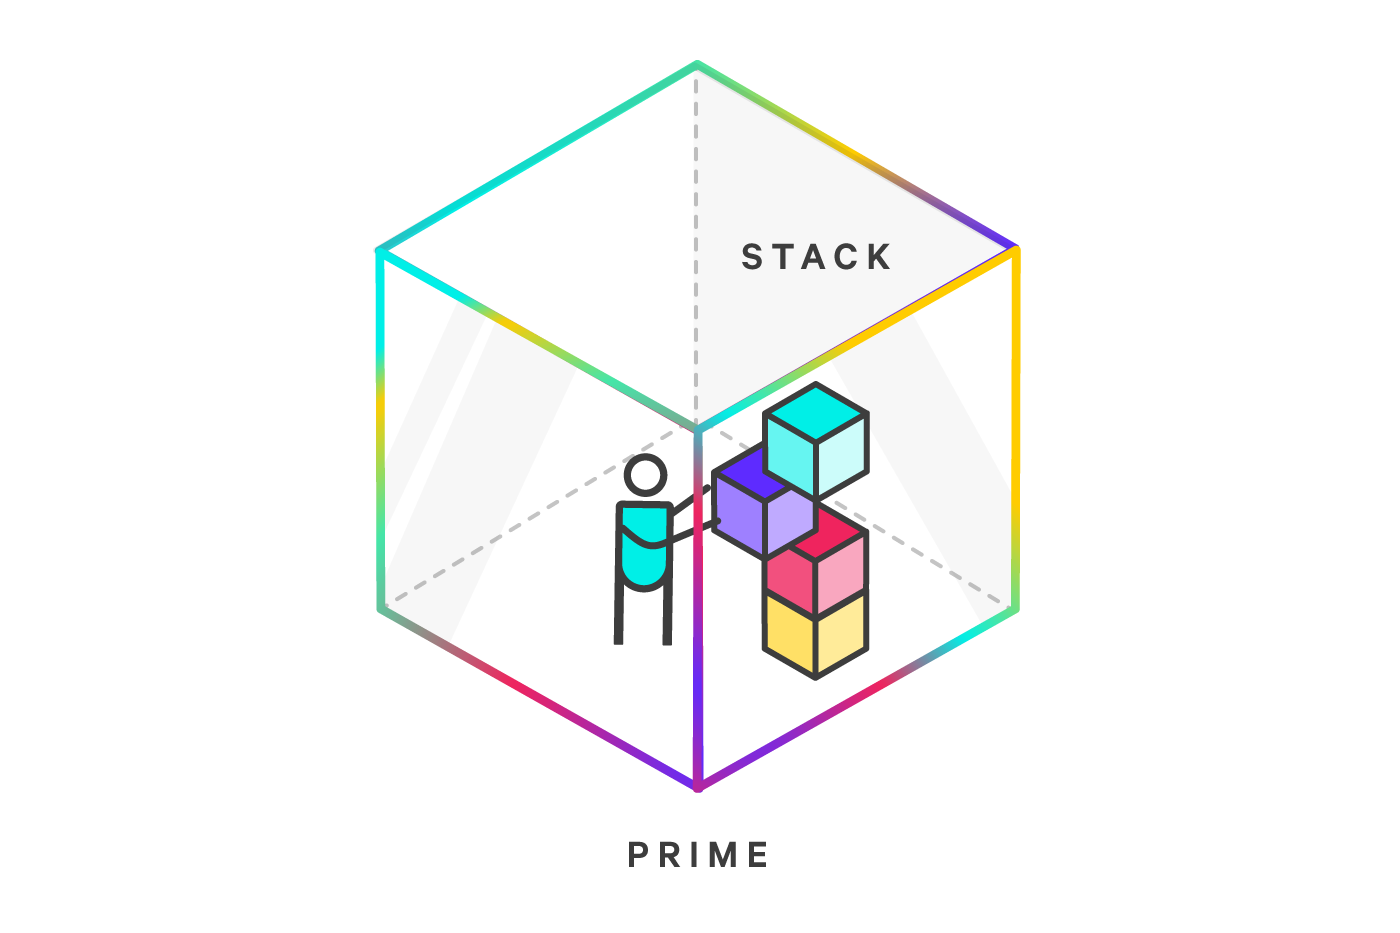 Icon of a person grabbing a memory block from her stack. The person is inside a cube with a bright gradient border.